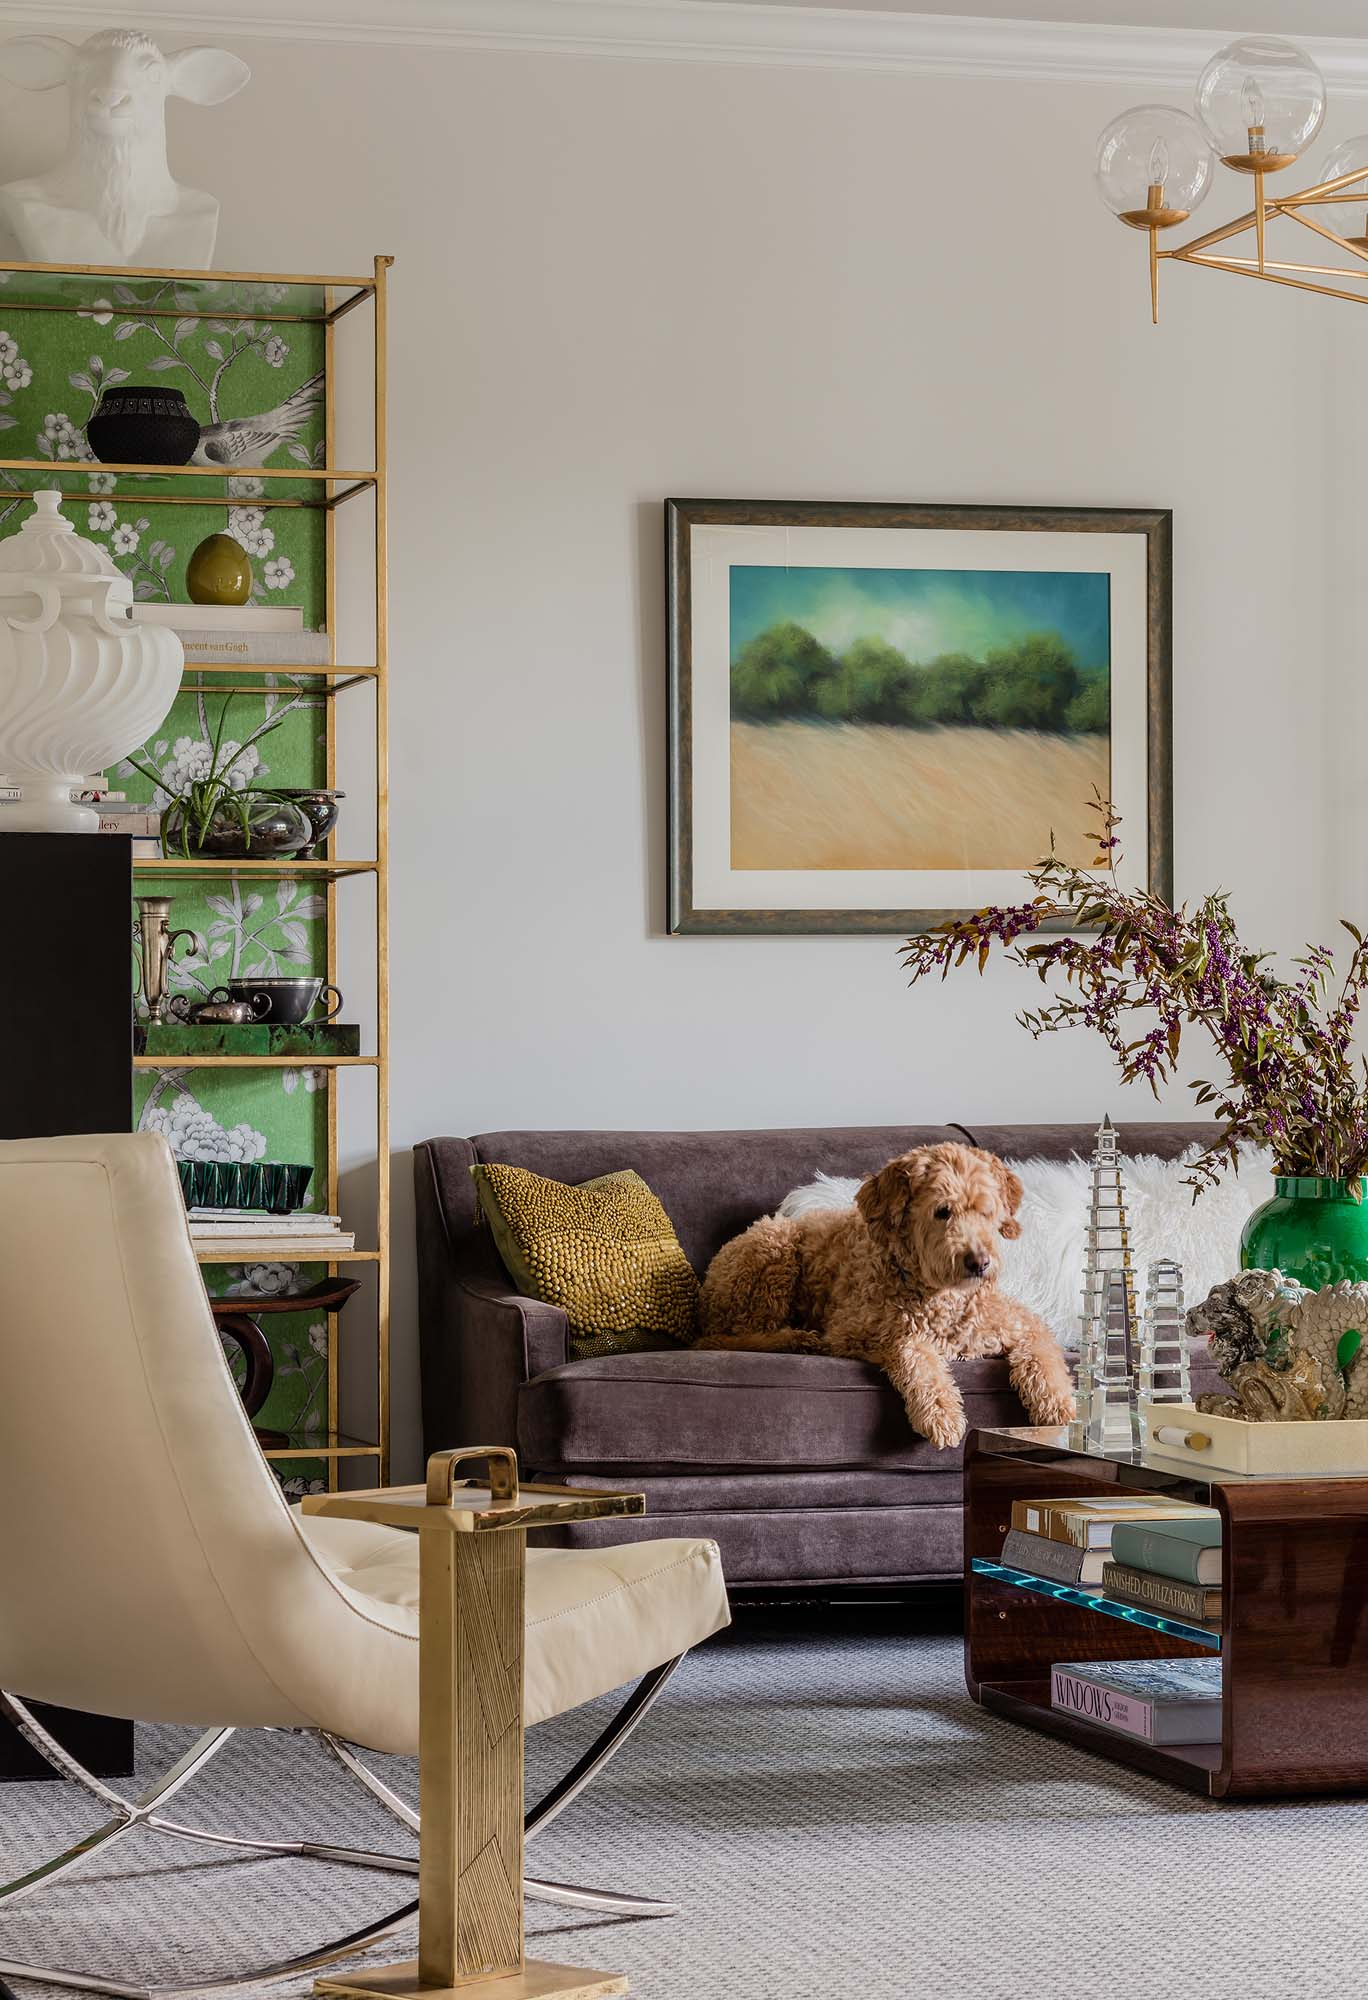 Living room with sofa, shelves, center table, and artwork on the wall, goldendoodle, golden doodle, mary McDonald, chinoiserie, herringbone, herringbone rug, gray sofa, velvet sofa, dragon, chinois palais, lettuce green, obelisk, williams sonoma, james chair, white leather, rowan, worlds away, chandelier, delano, etagere, currey, currey and company, plinth, oly studio, ramsey, animal bust